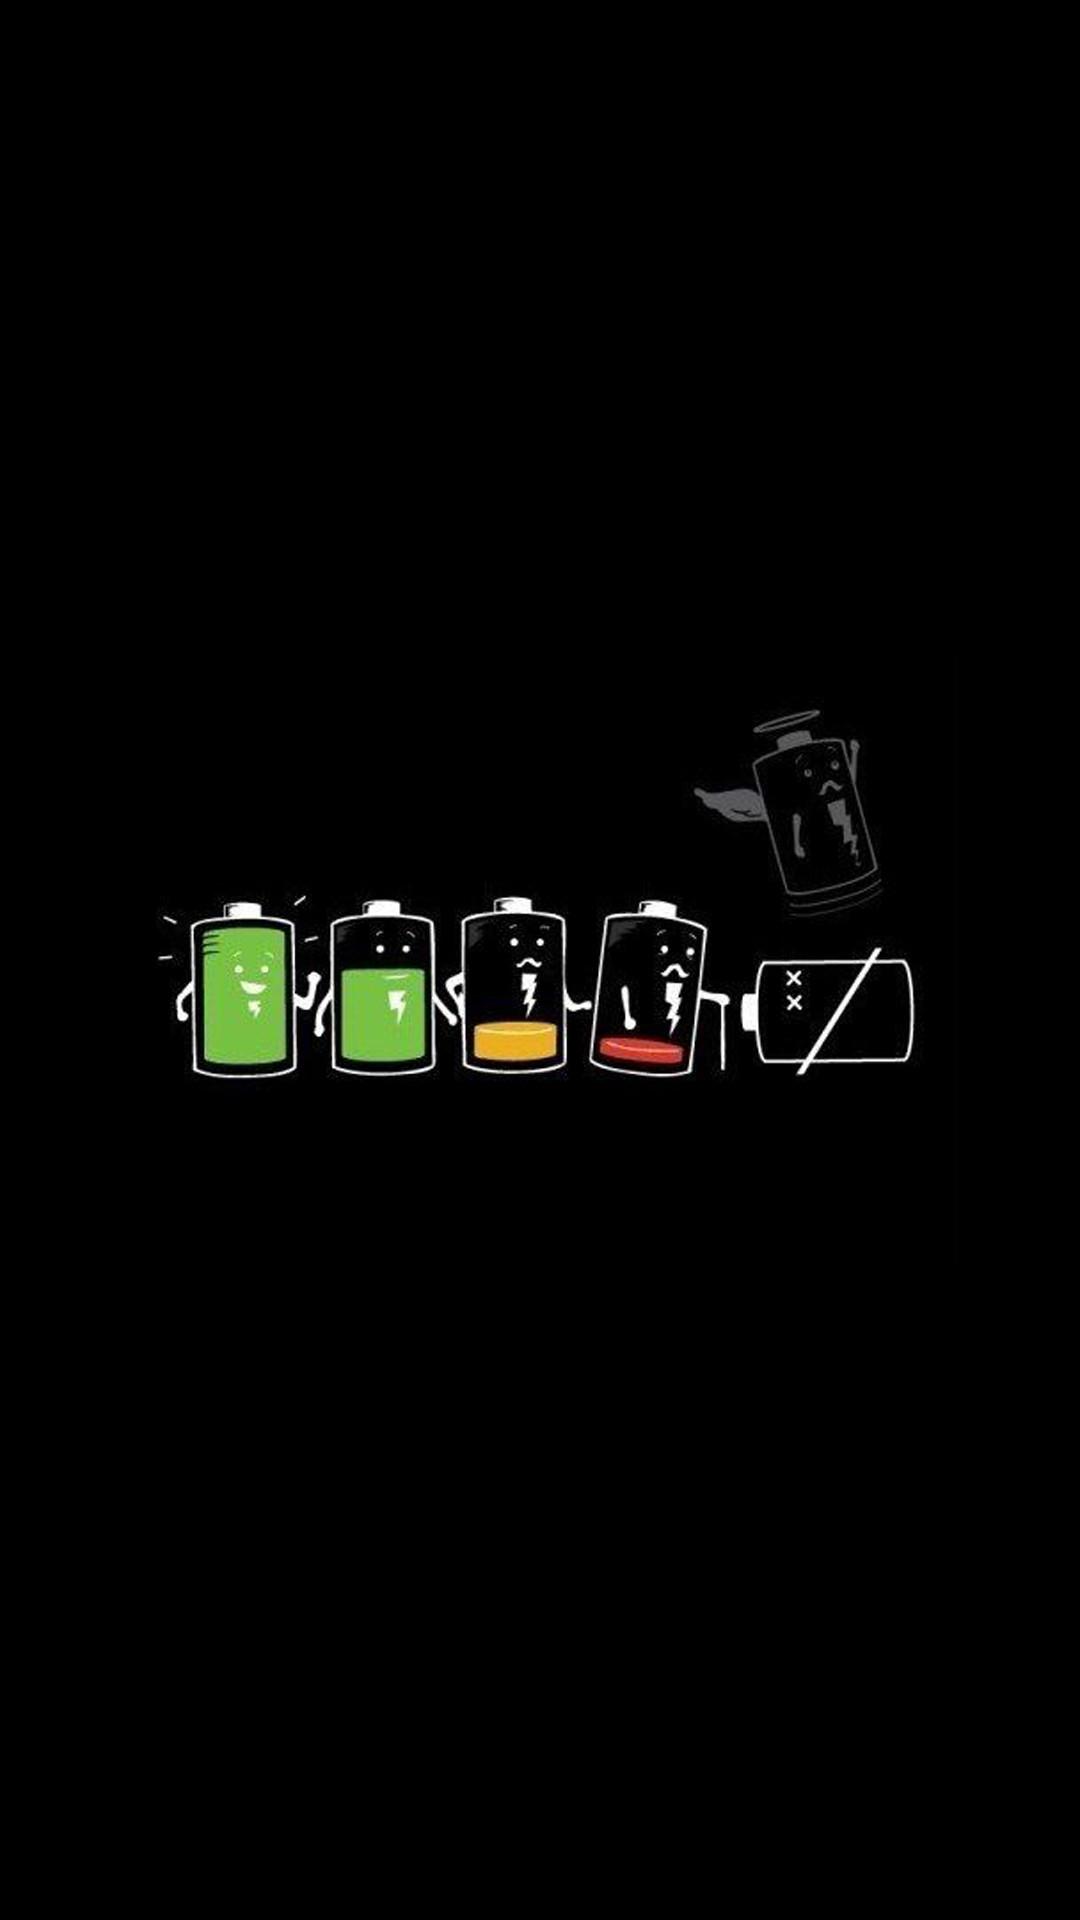 Battery Life Cycle Funny iPhone 6+ HD Wallpaper – https://freebestpicture.